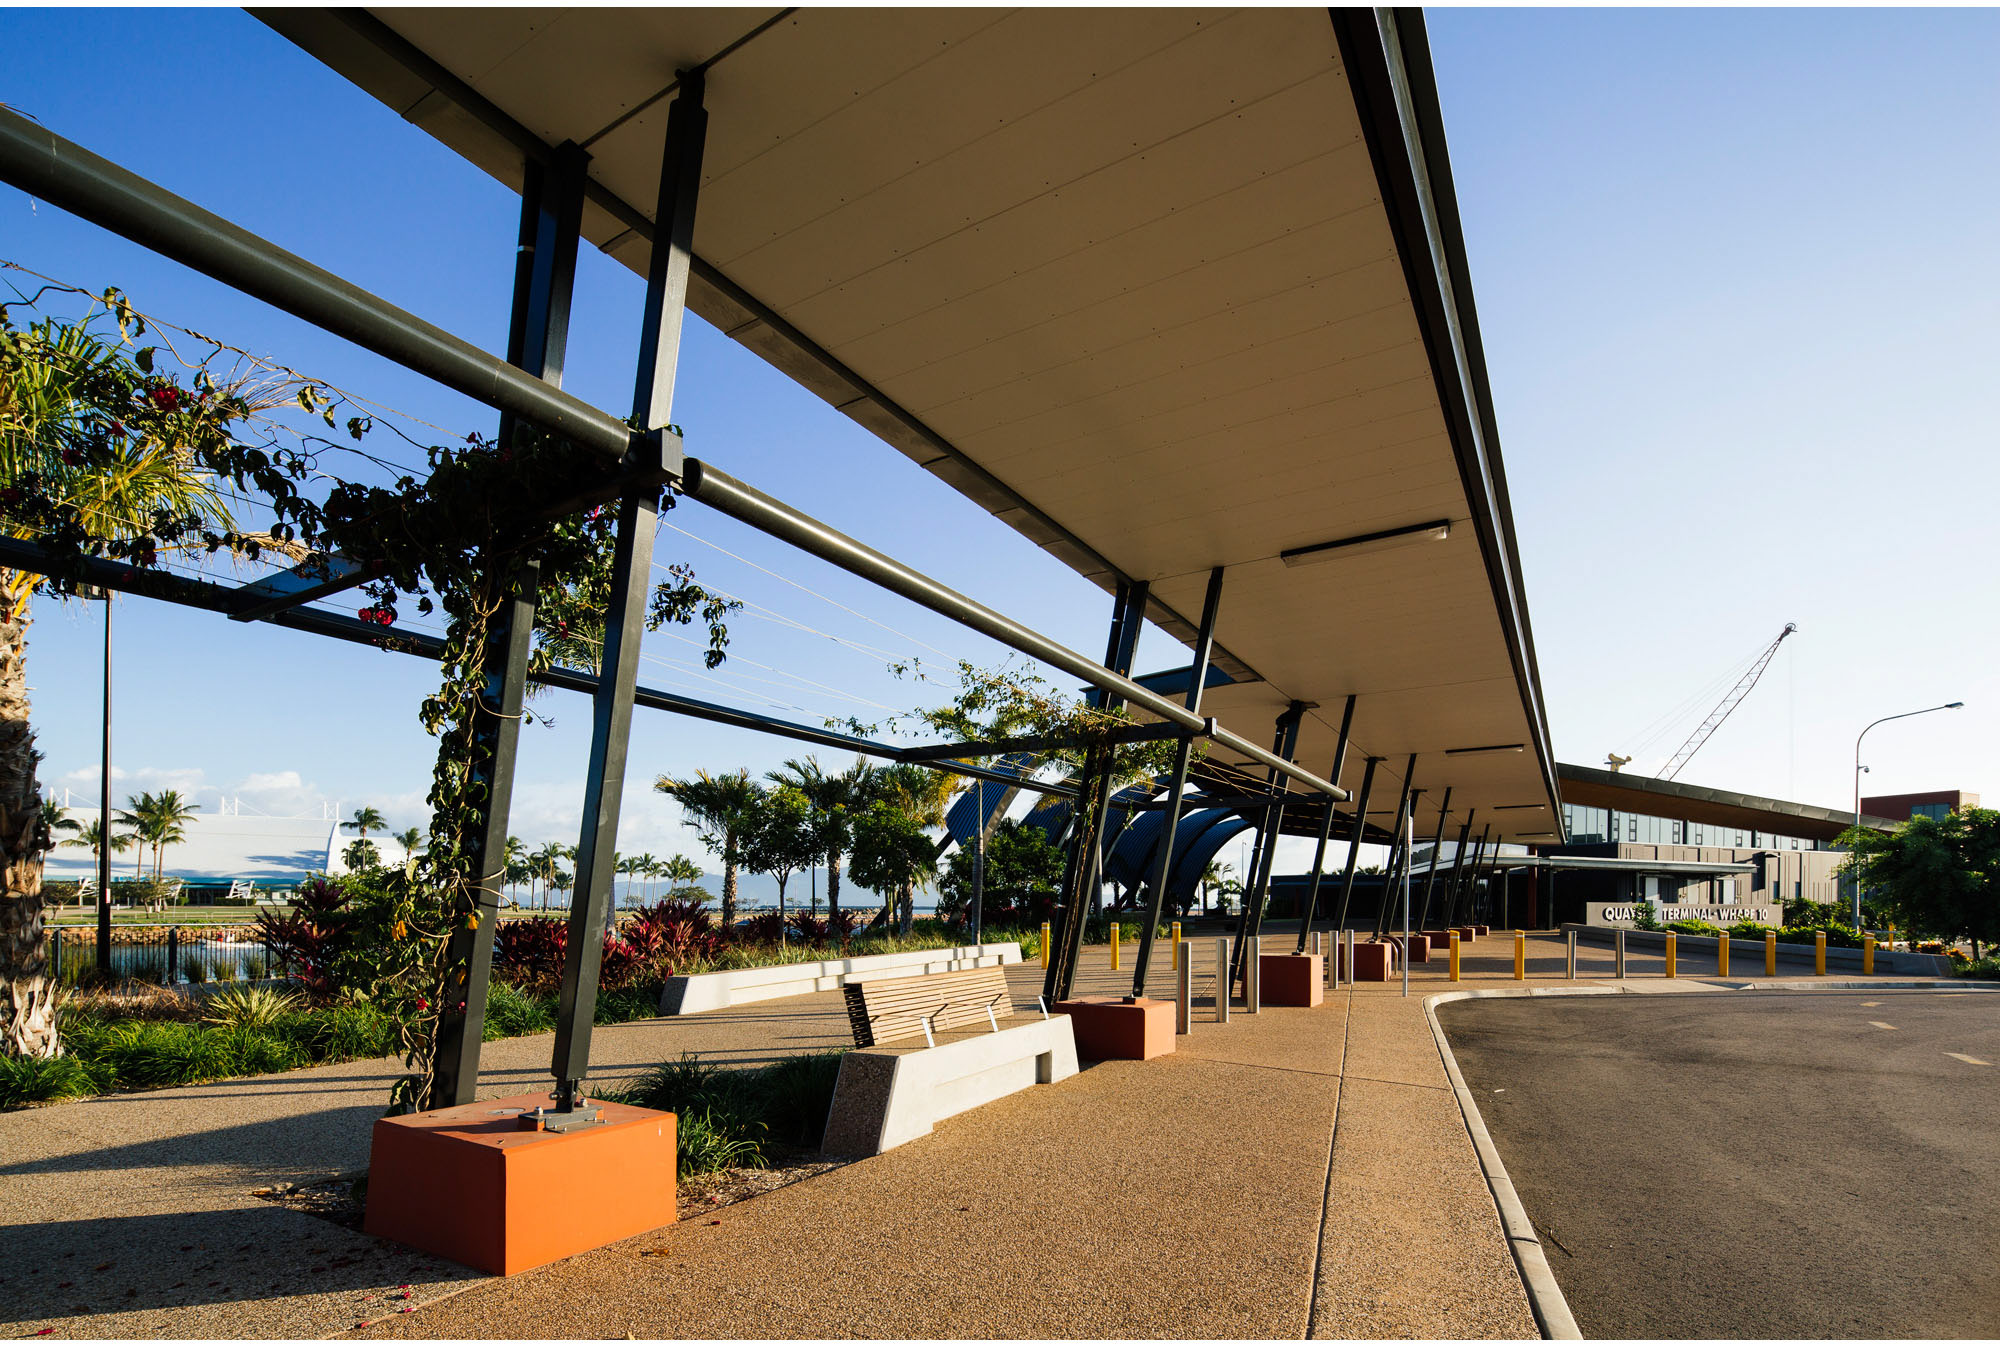 Quayside Cruise Ship Terminal in Townsville